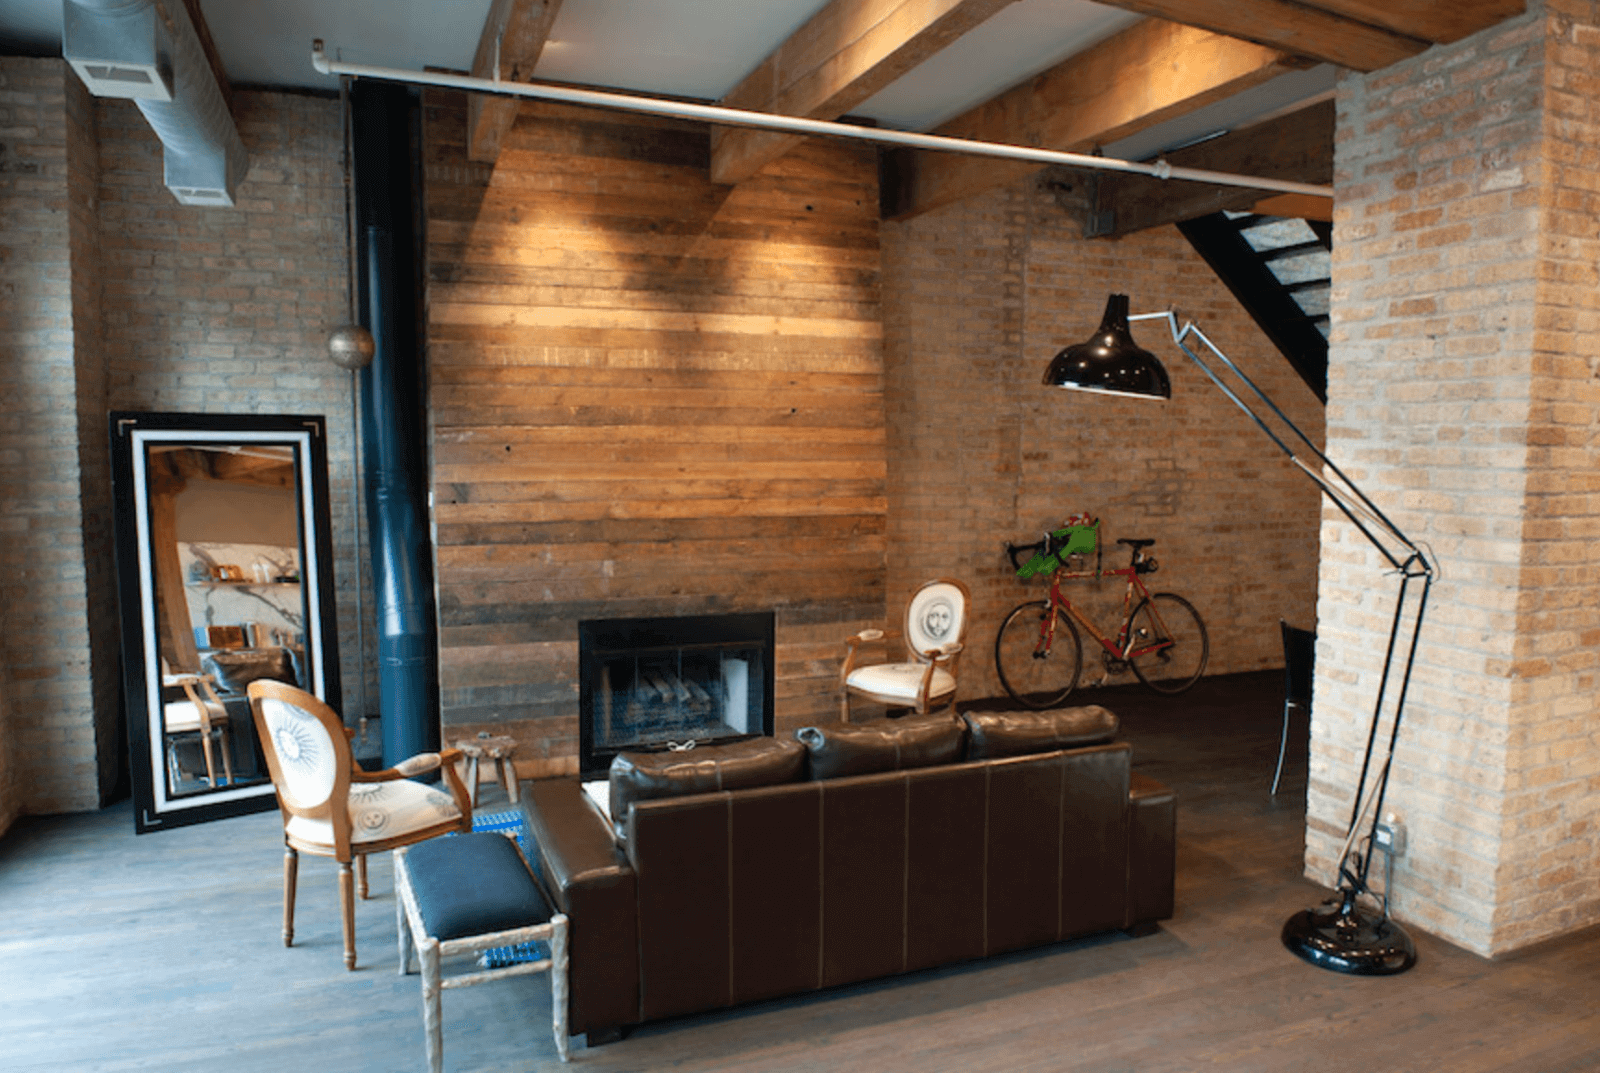 Wood Accent Wall Ideas around Fireplace